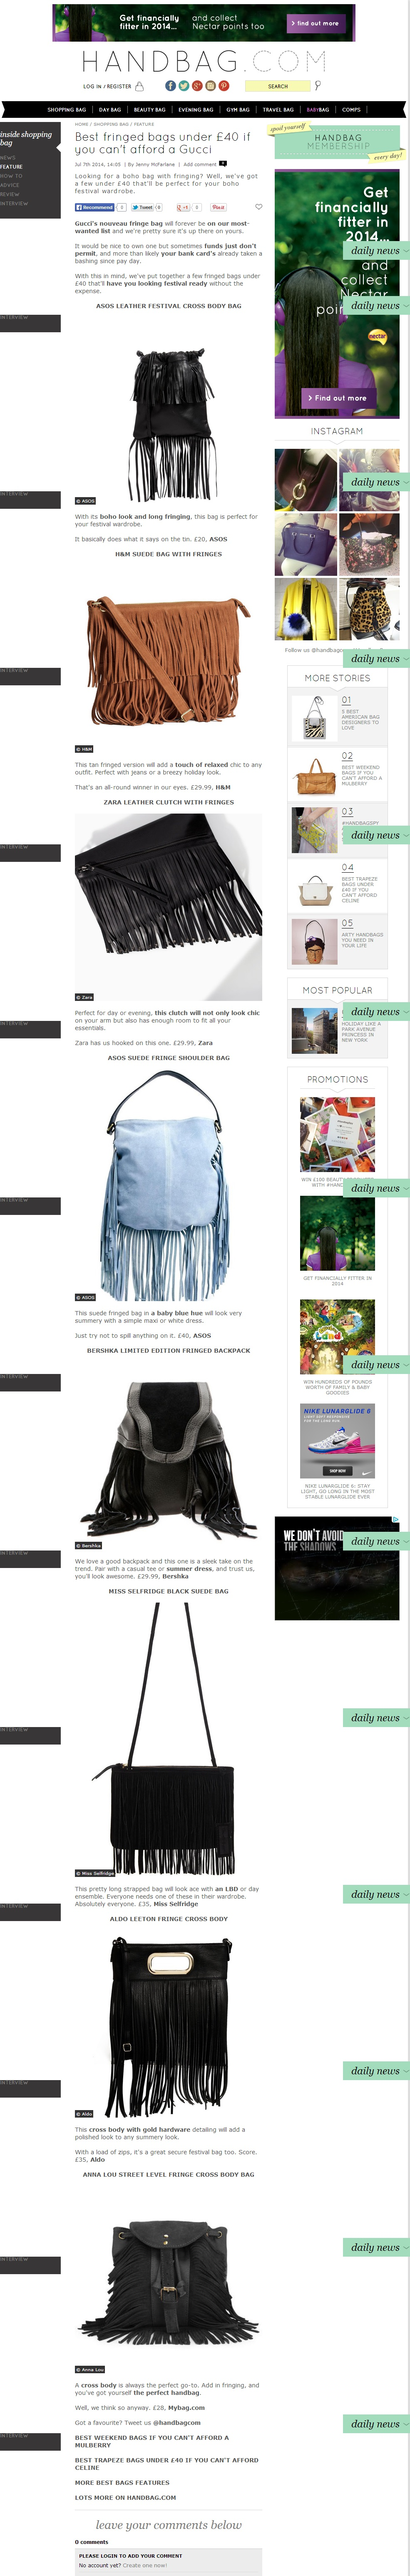 screencapture-www-handbag-com-shopping-bag-feature-a582583-best-fringed-bags-under-gbp40-if-you-cant-afford-a-gucci-html